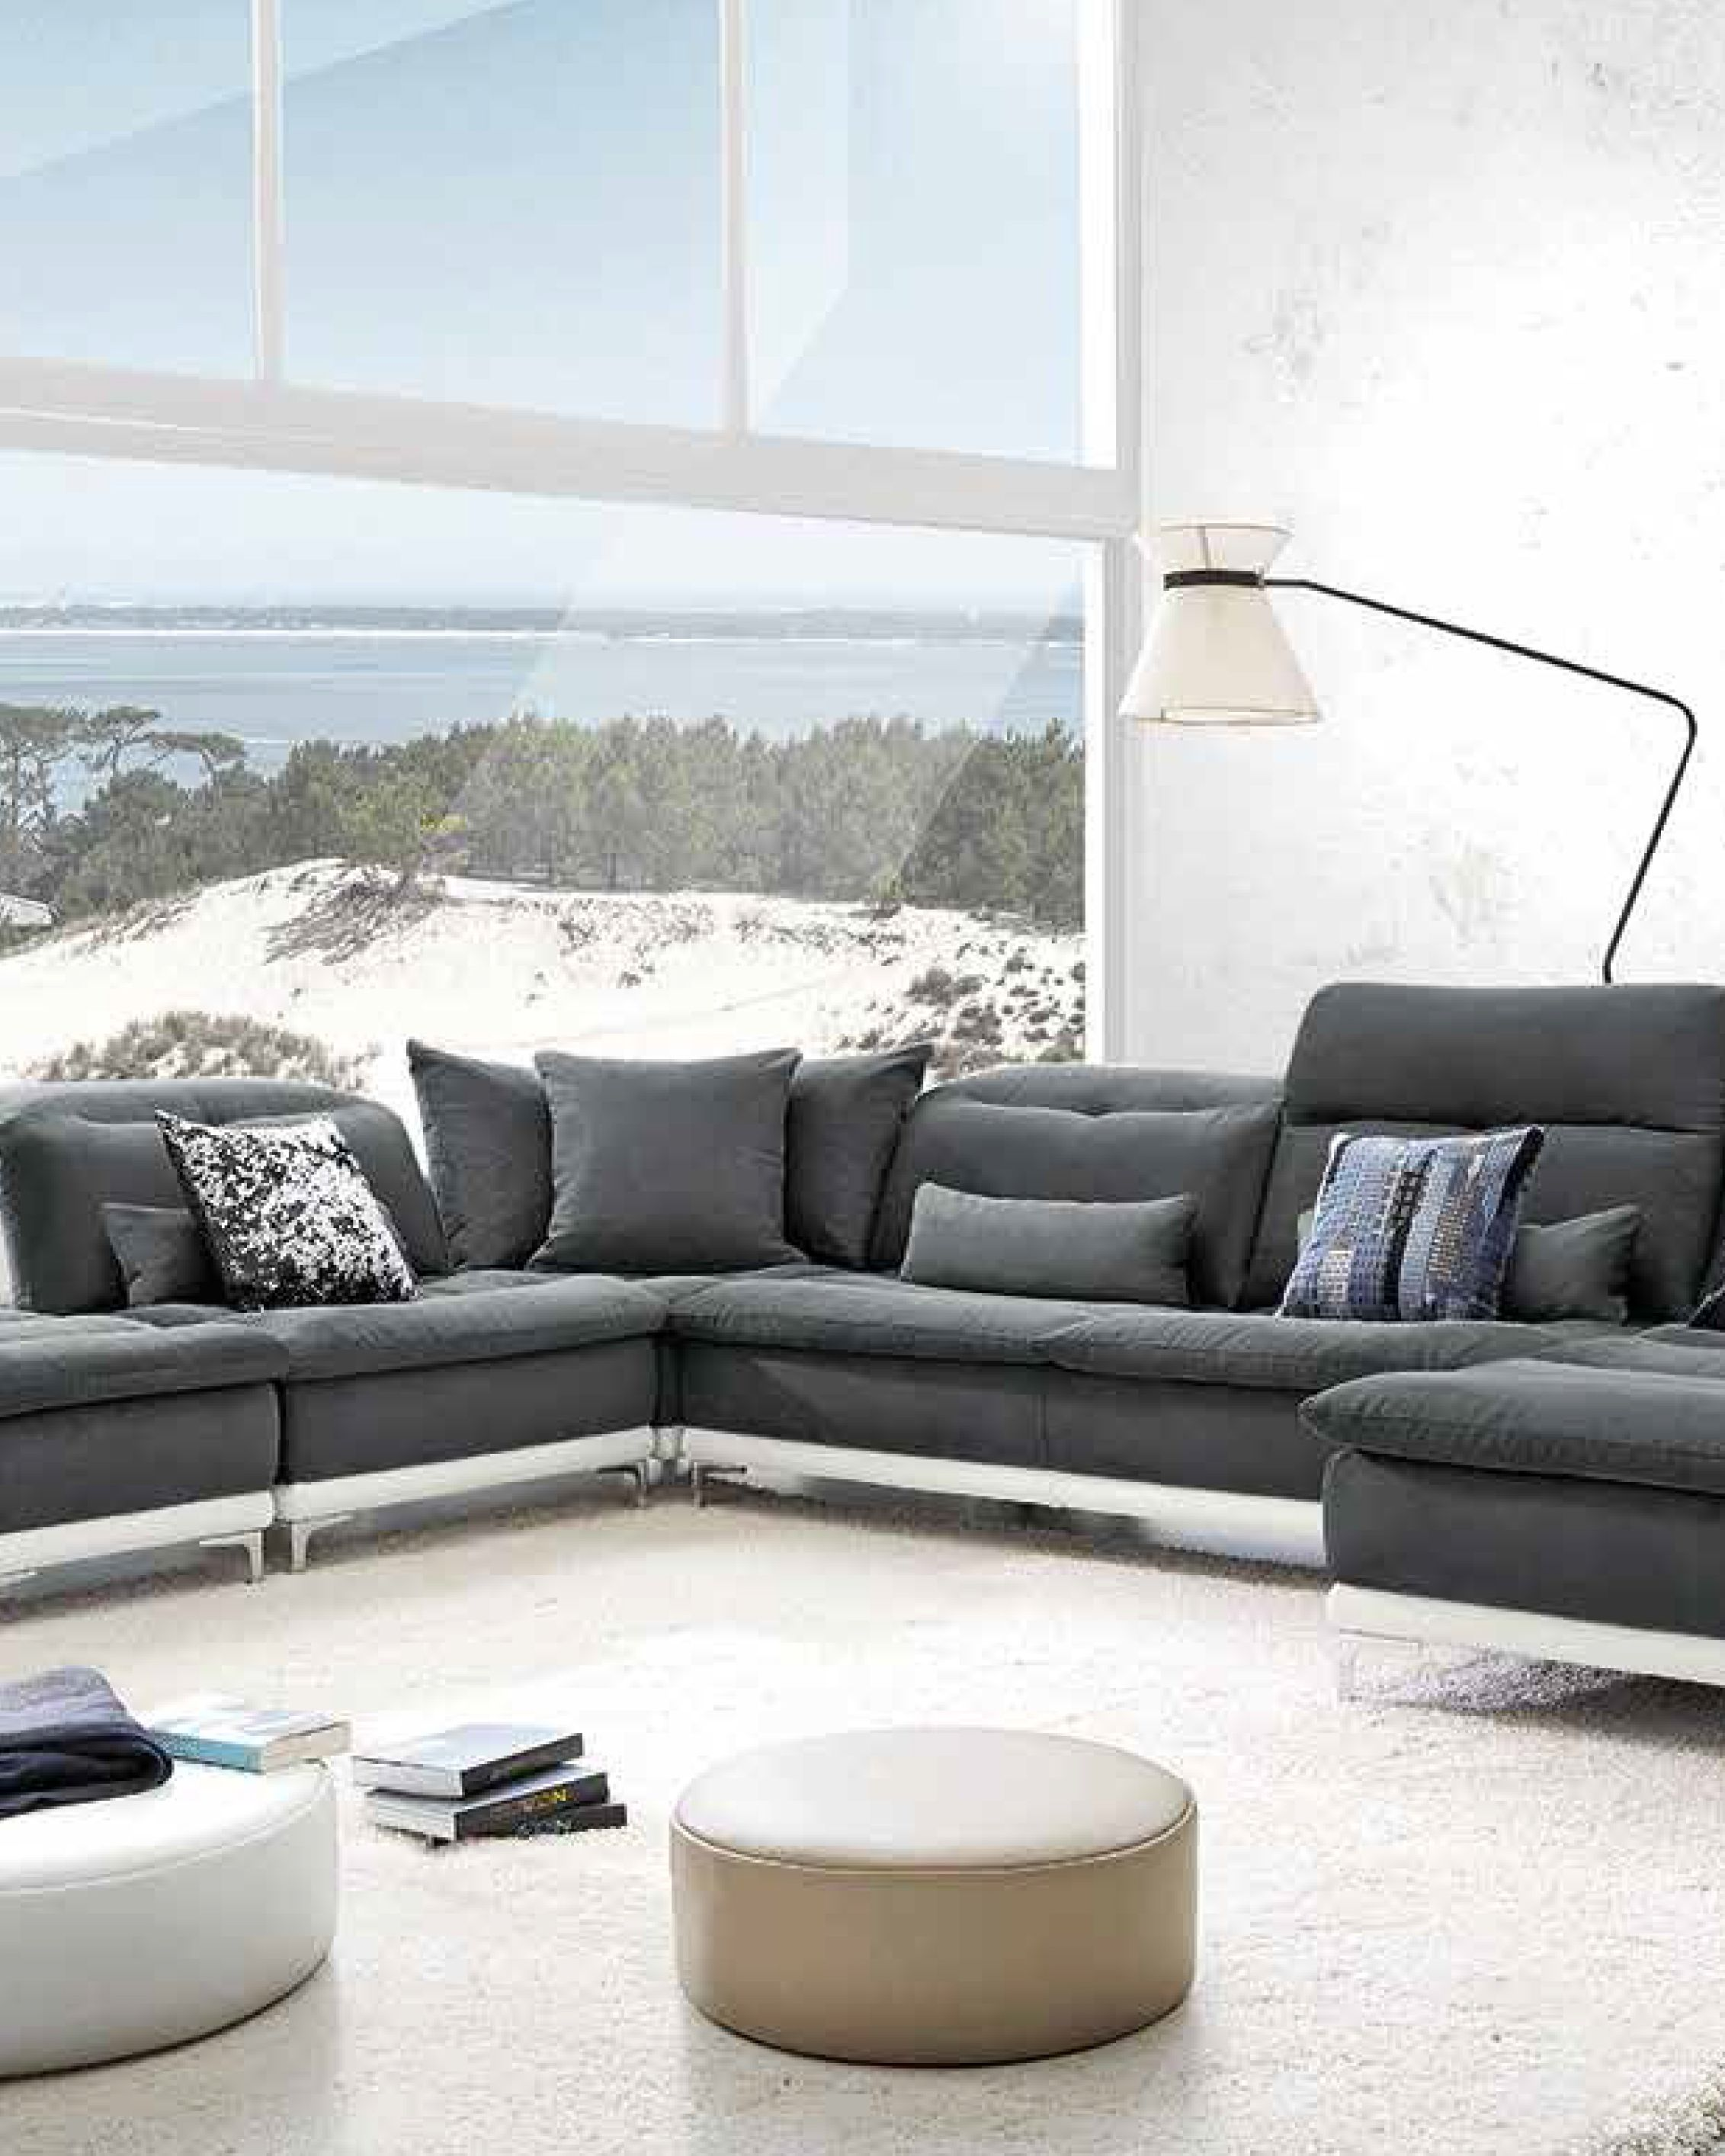 The Lusso Horizon Modern Grey & Leather Sectional Sofa brings in a commodious gentle feel featuring adjustable headrests and cushioned backs. Perfect for large and open spaces!